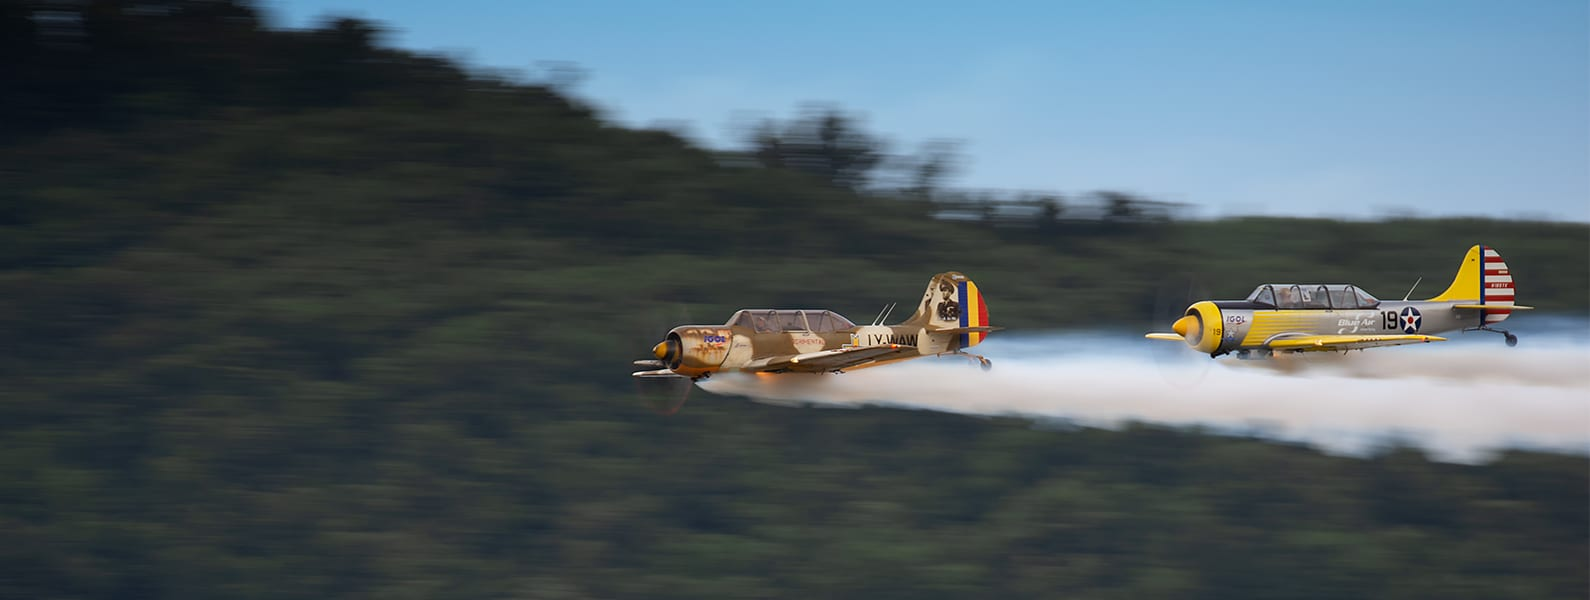 airshows.category